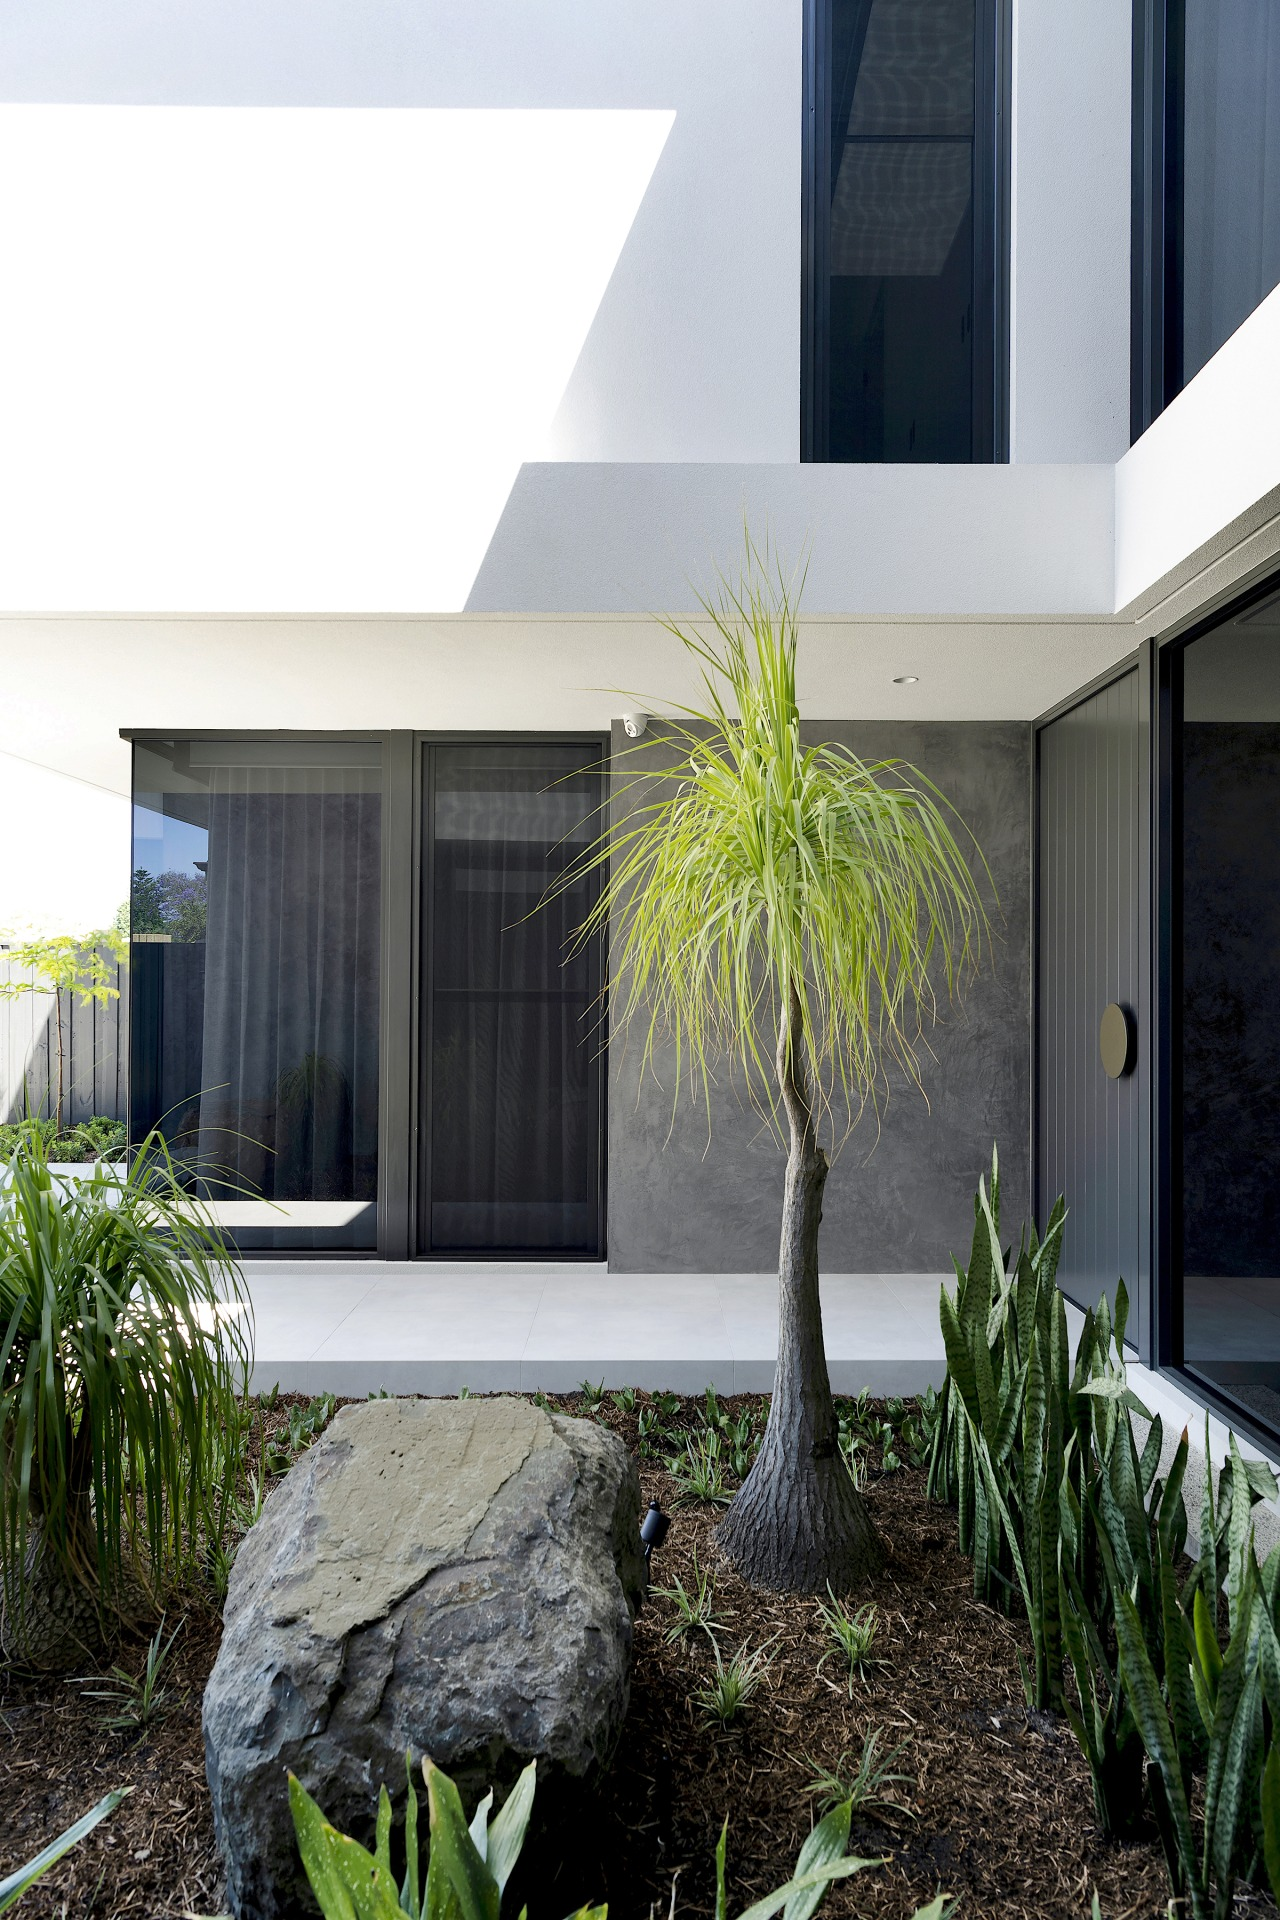 The sculptural entry to the luxurious home.